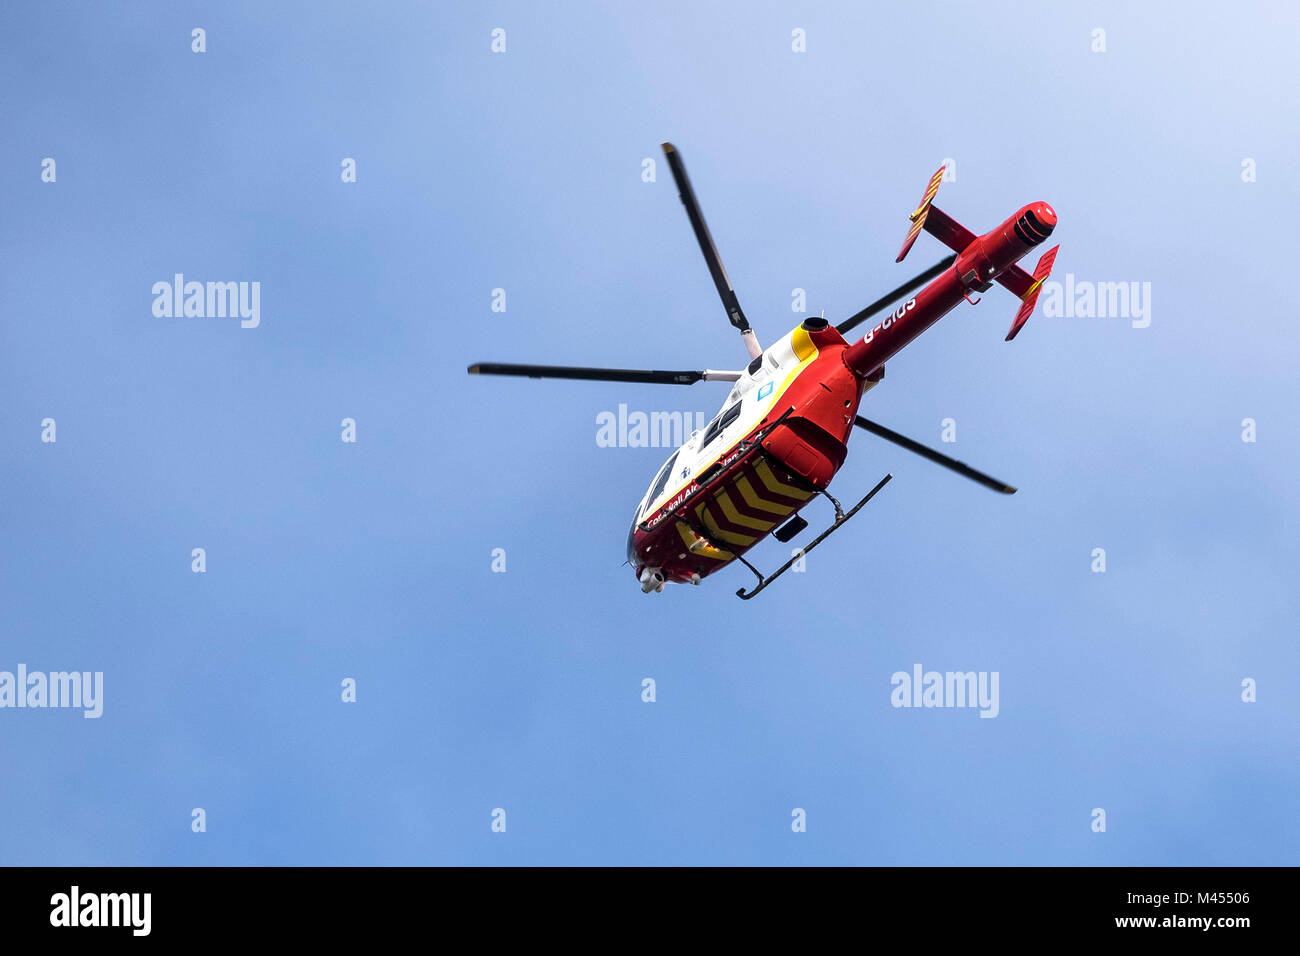 The Cornwall Air Ambulance helicopter McDonnell Douglas MD 902 Explorer  flying overhead. - Stock Image